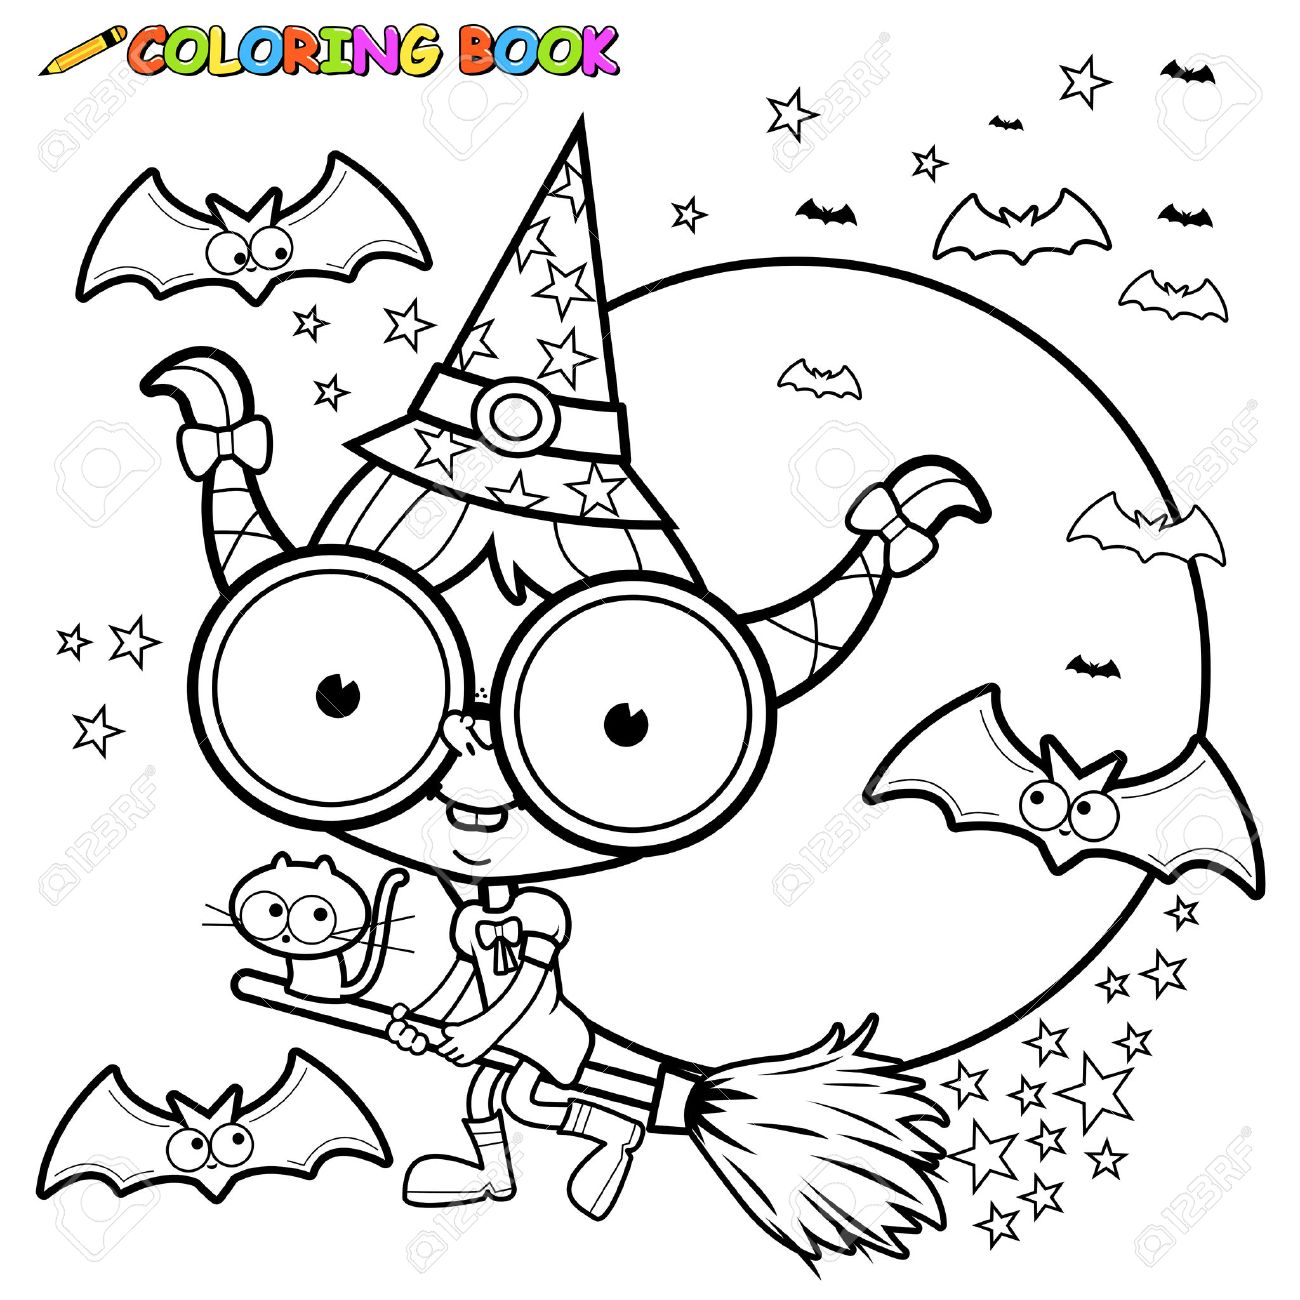 Coloring page Halloween witch flying with broom. - 46750518